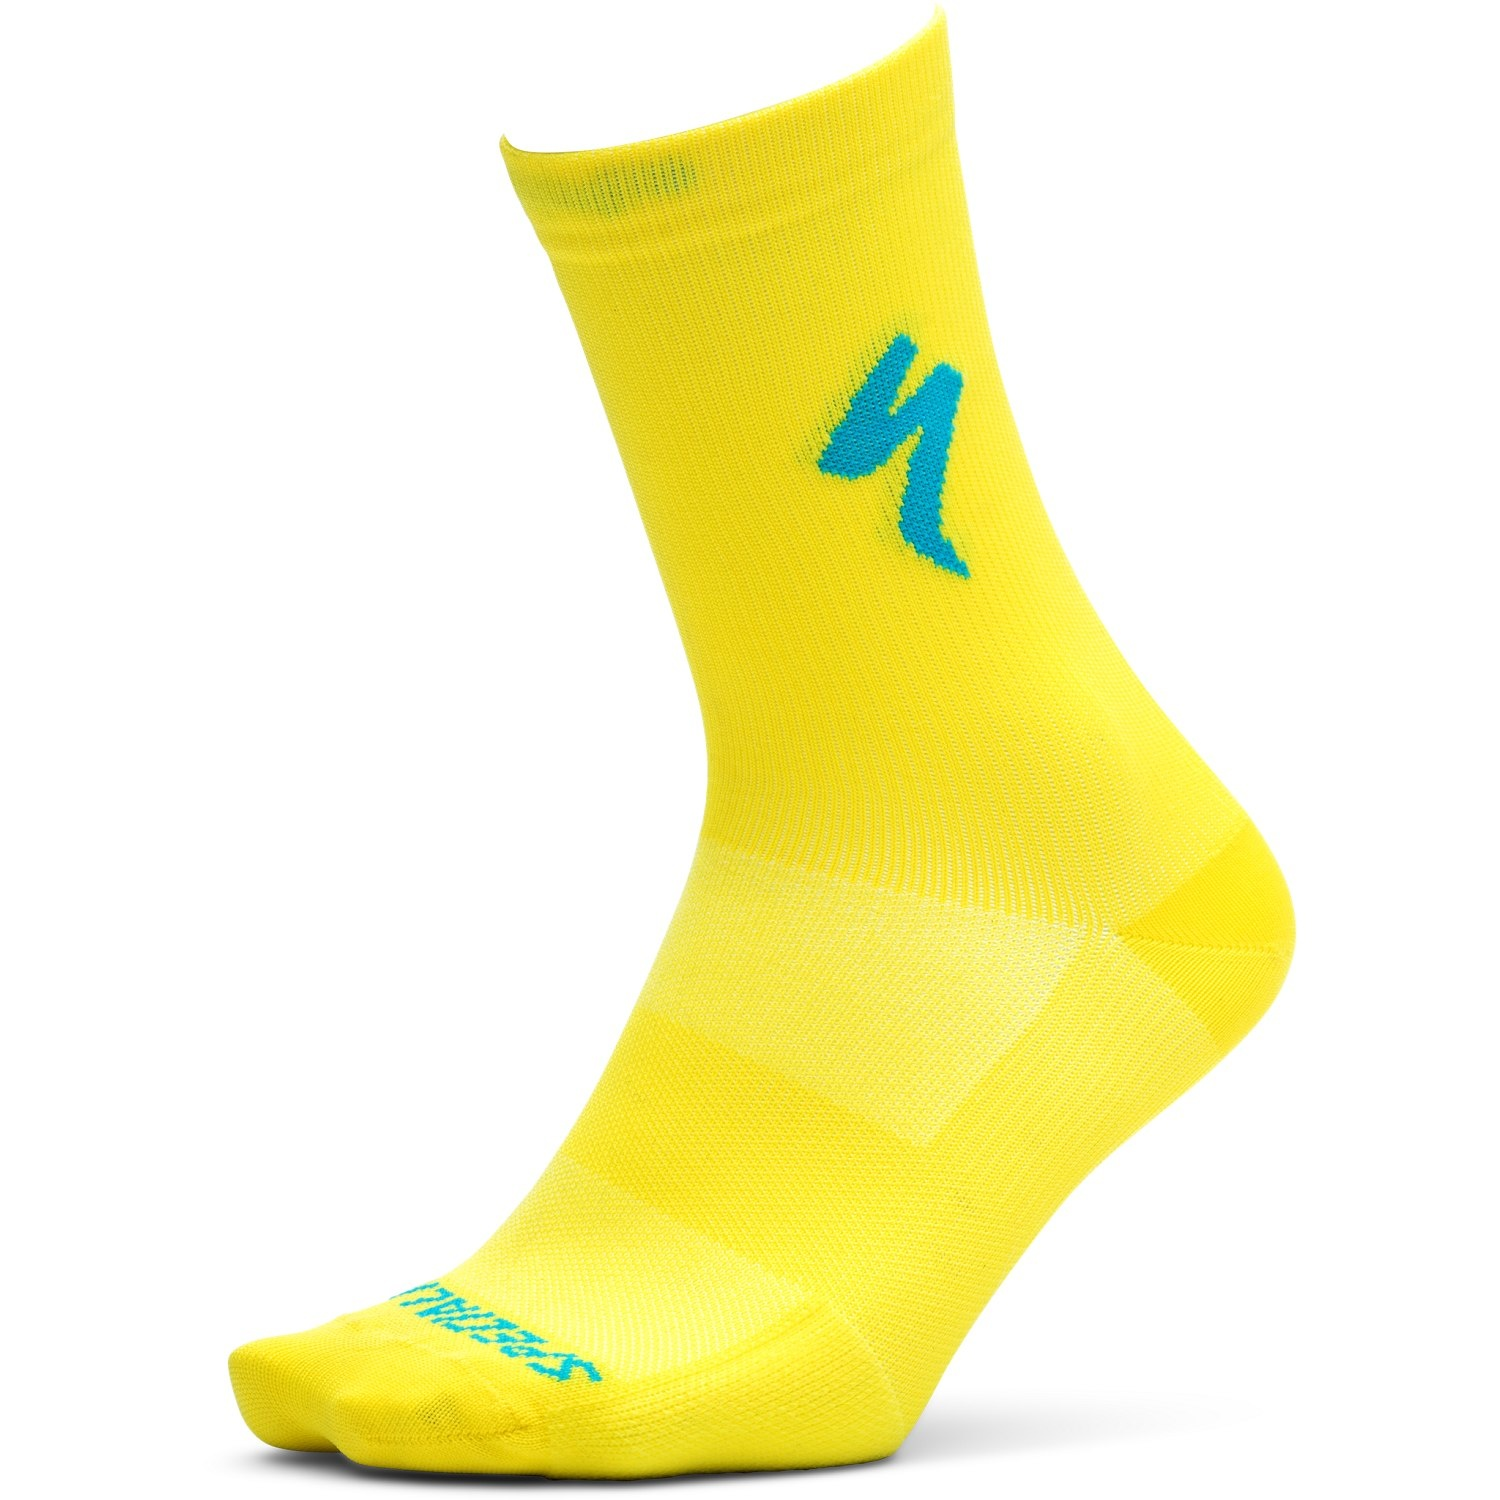 Road Tall Socks - 2020 Down Under Collection